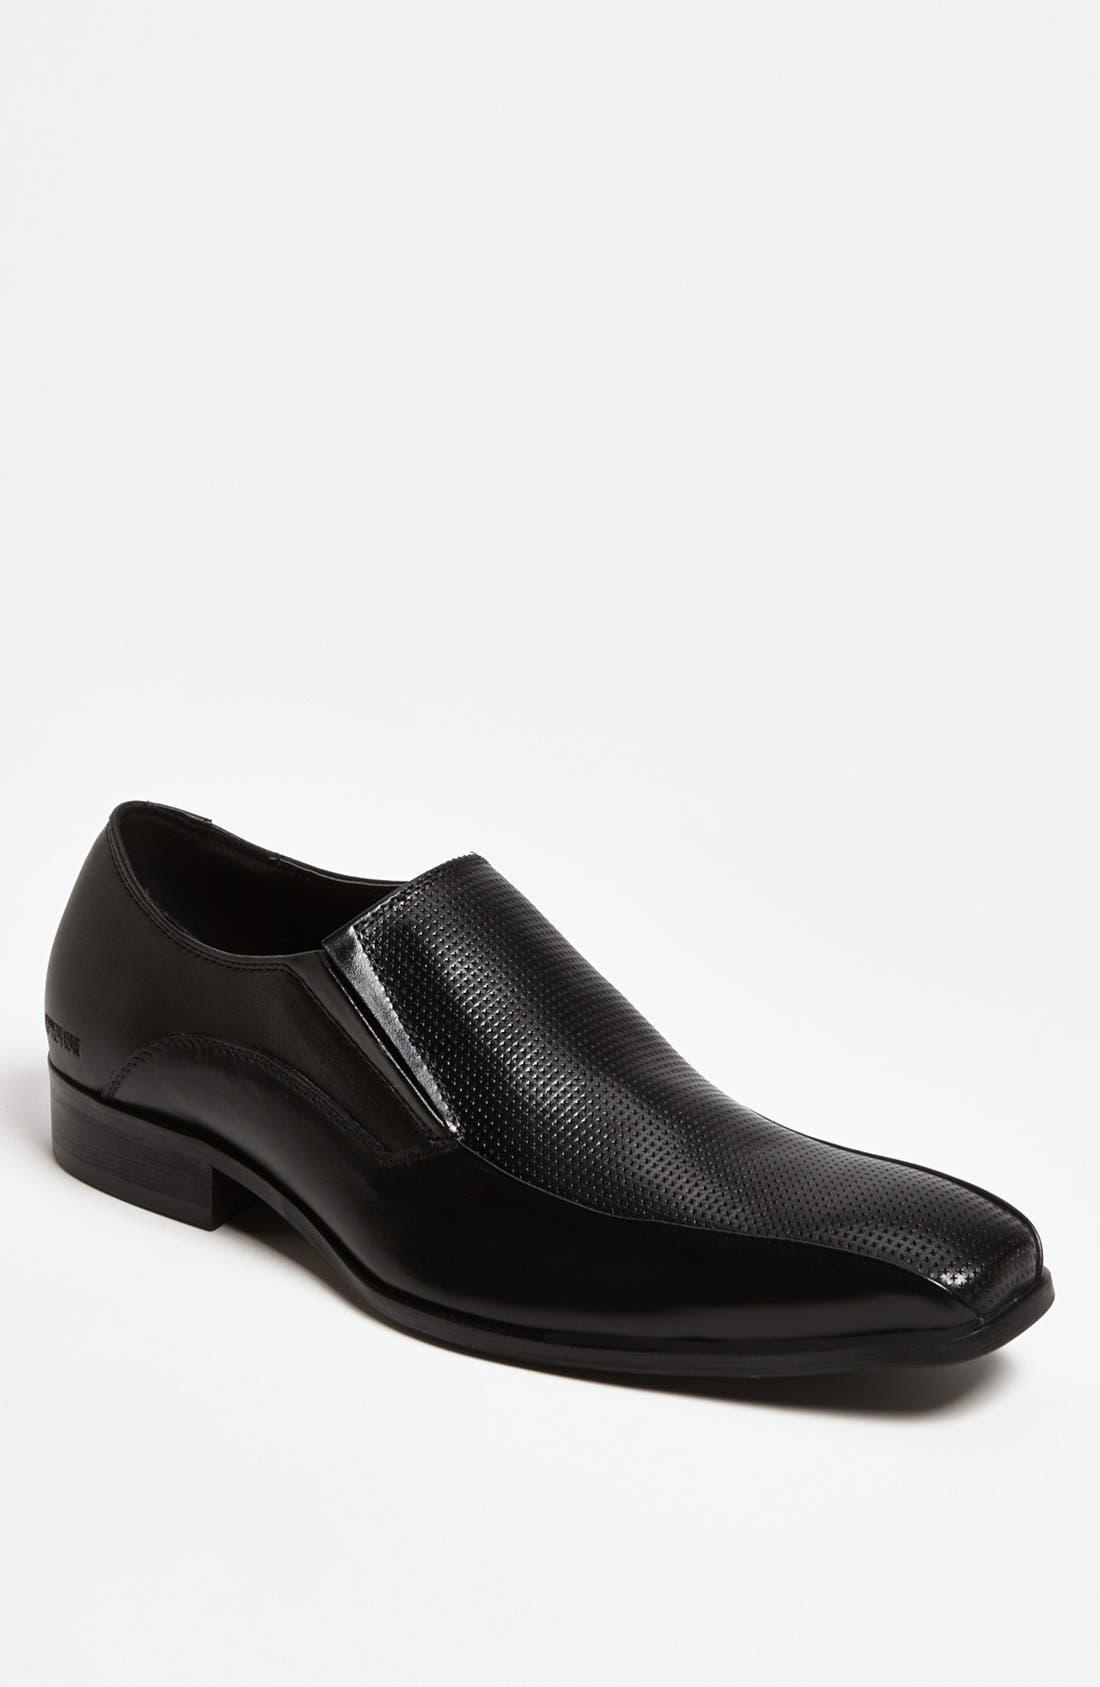 Alternate Image 1 Selected - Kenneth Cole Reaction 'The Jig is Up' Venetian Loafer